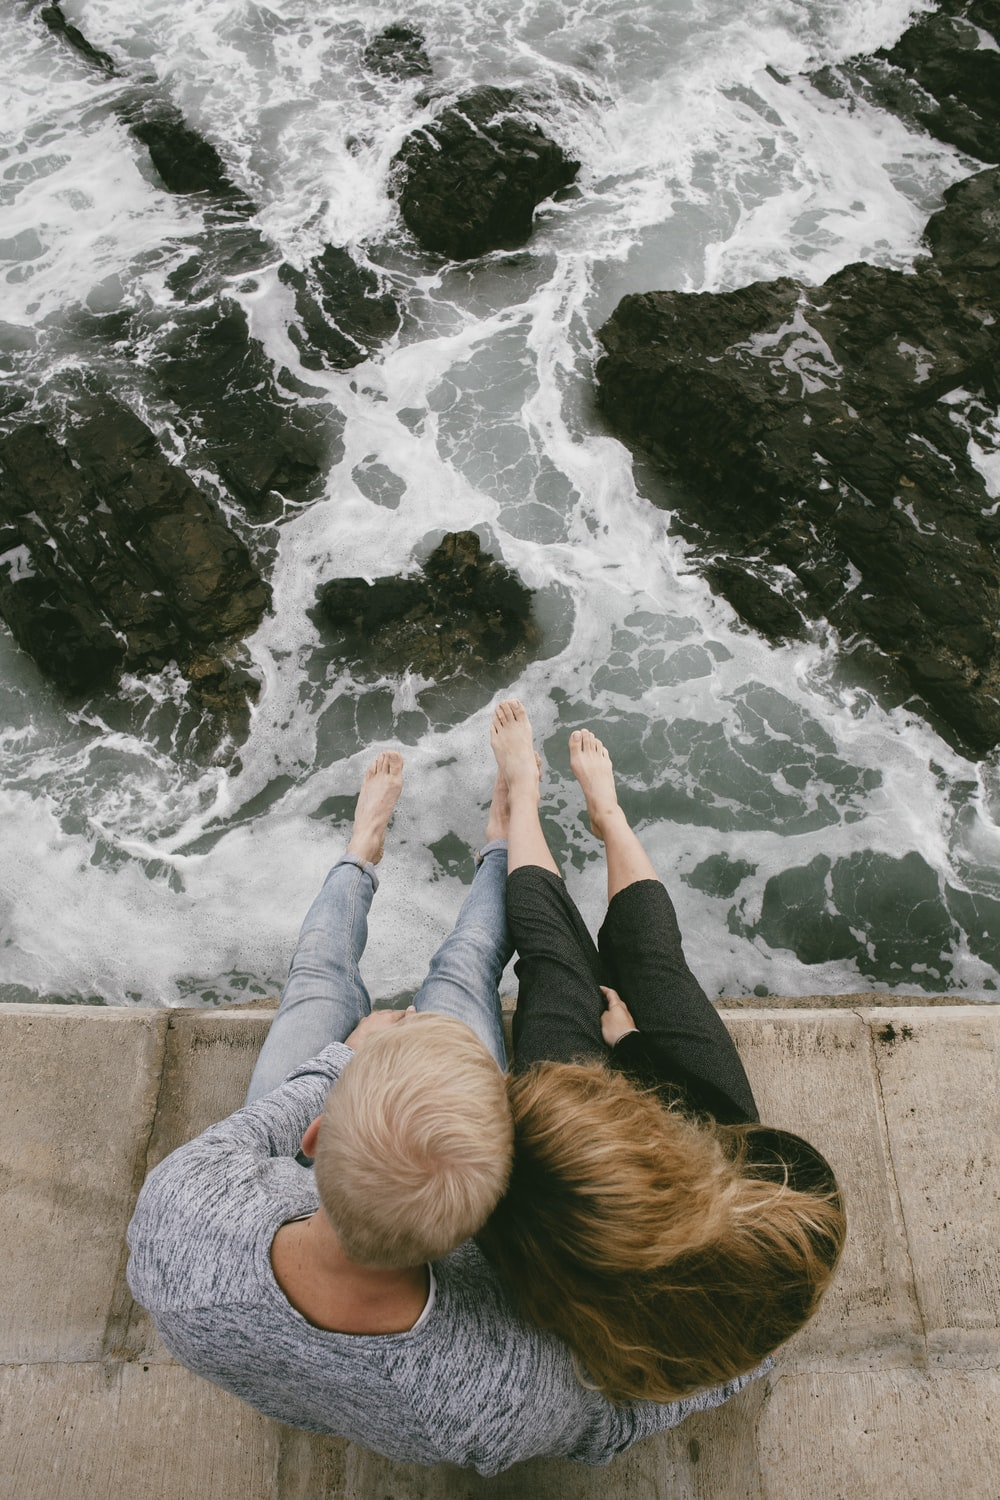 man and woman sitting on cliff near body of water